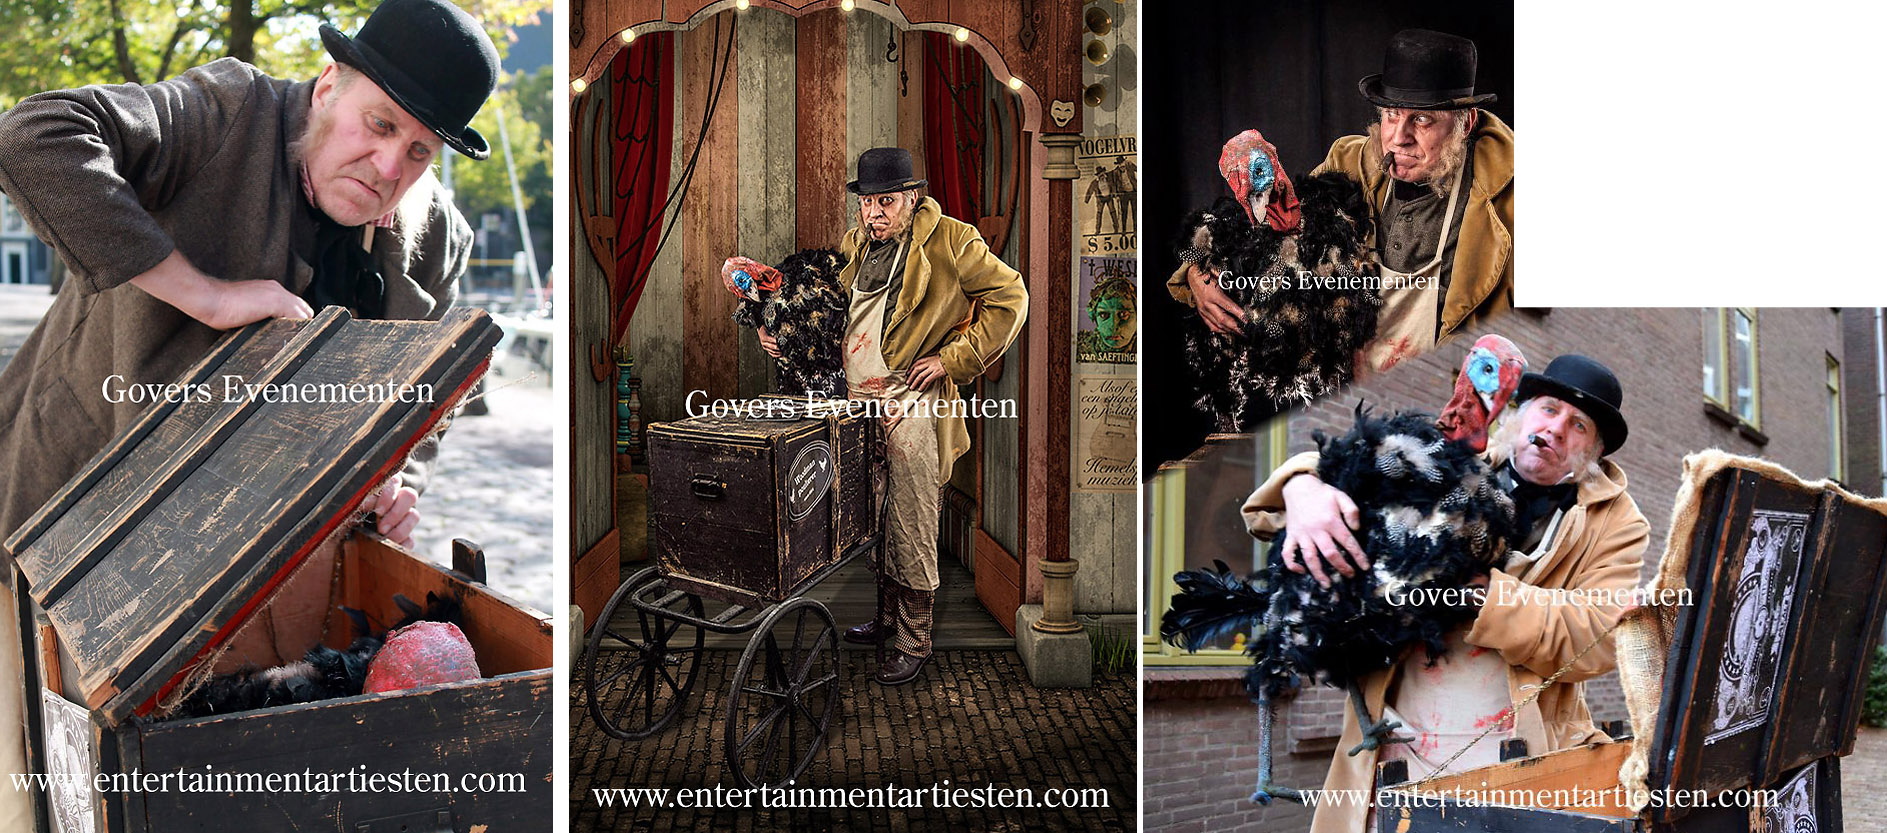 DePoelier, straattheater, kindertheater, artiest, artiesten, entertainment, festival, humor, vermaak, optreden, acteur, Govers Evenementen, www.goversartiesten.nl